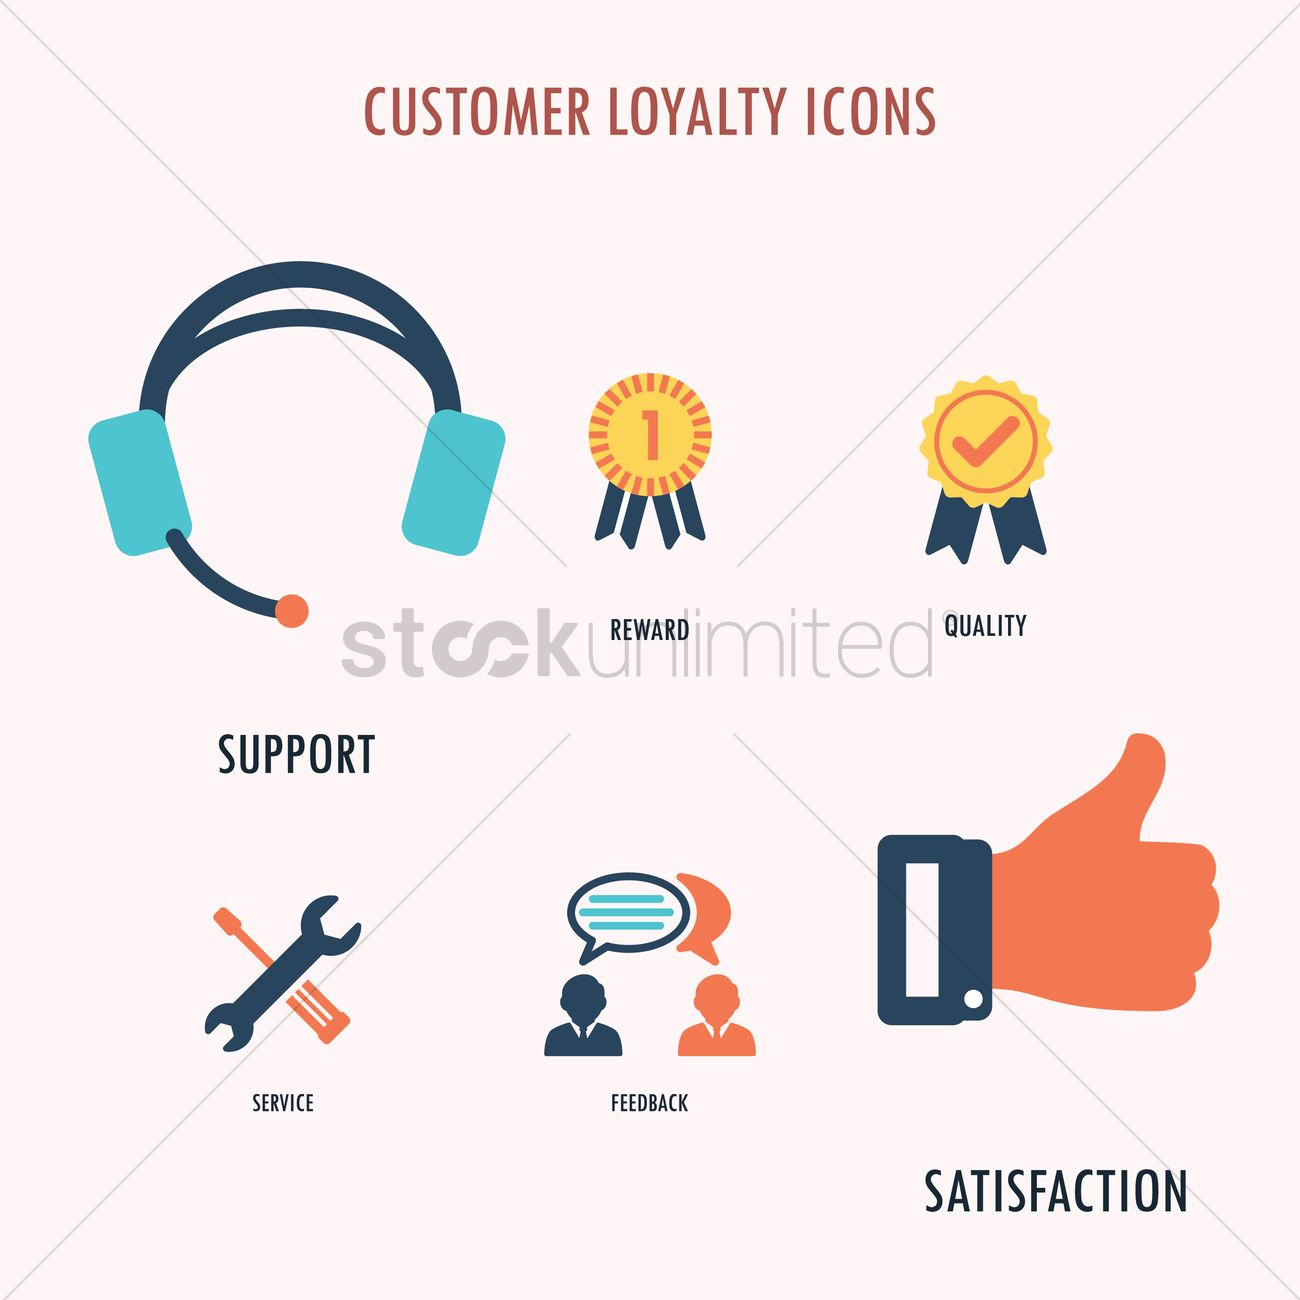 Customer loyalty icons Vector Image - 1962046 | StockUnlimited